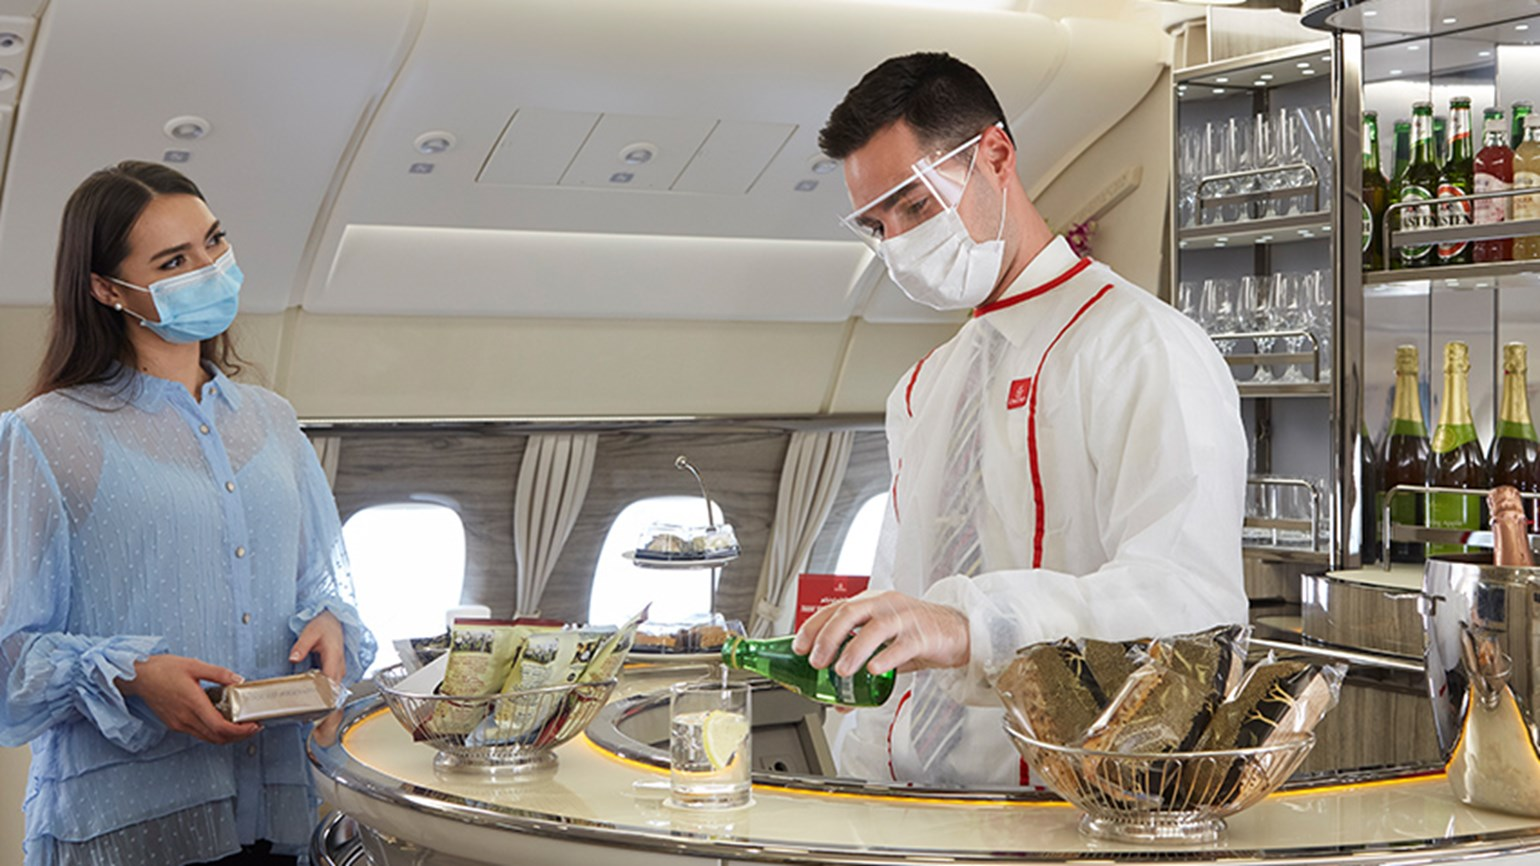 Emirates to cover passengers' Covid costs and restart onboard services